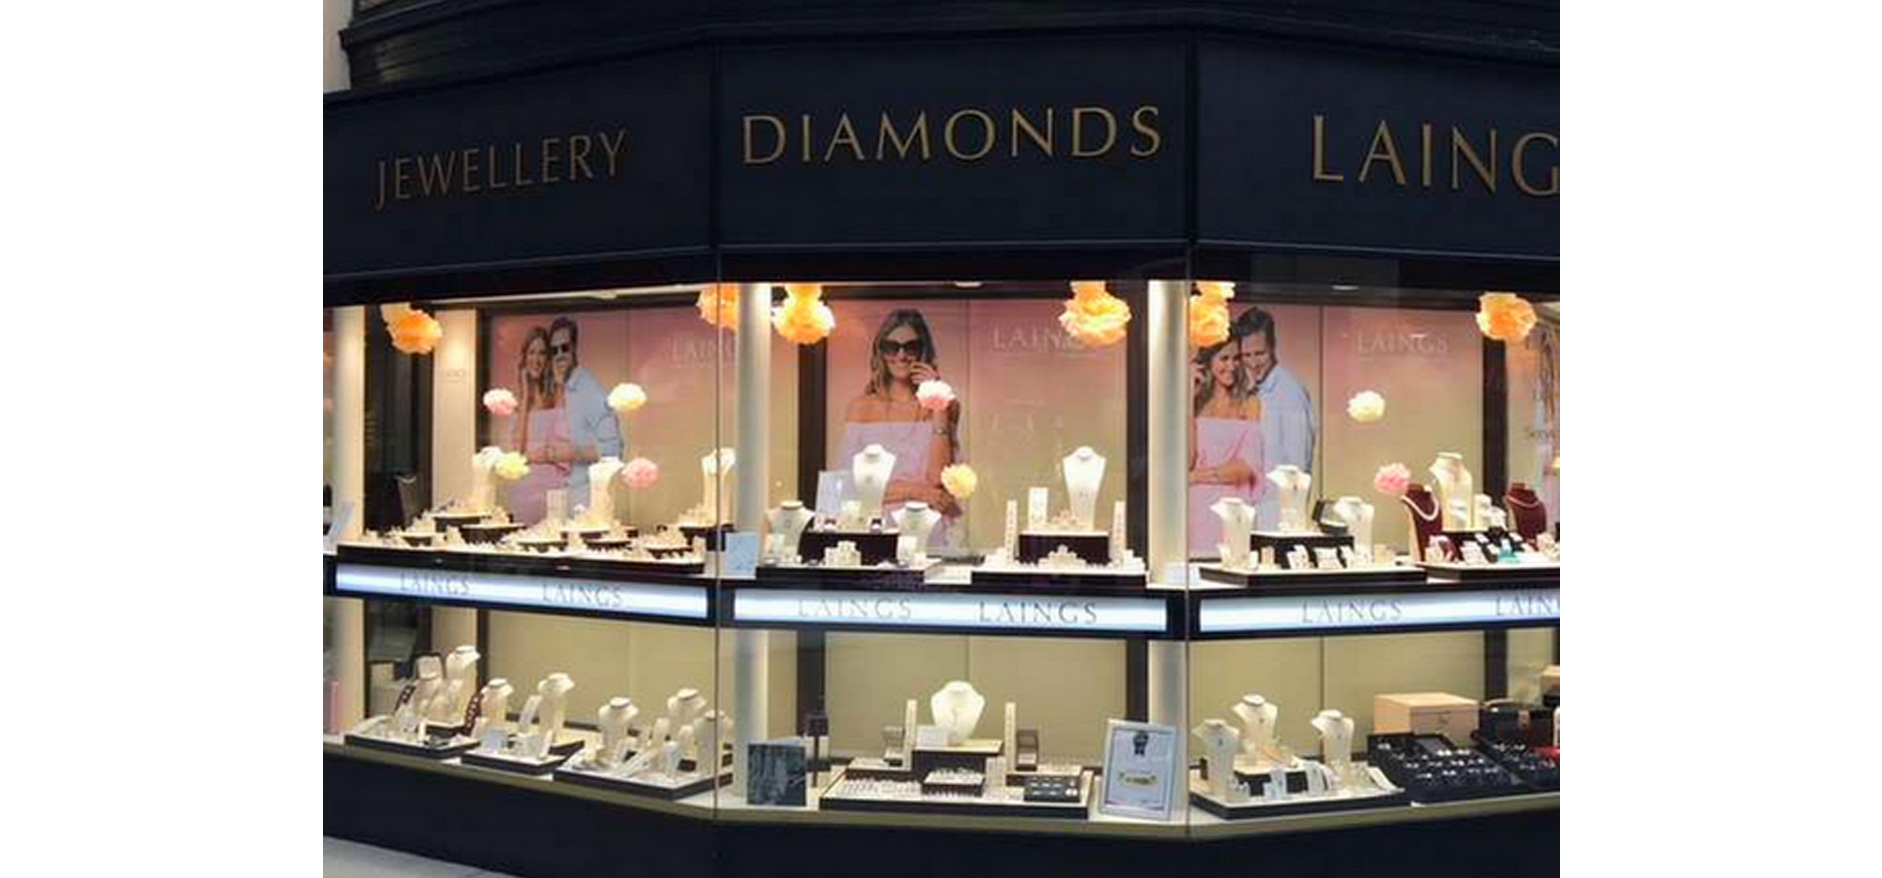 Jewellery shop front - visual merchandising from VM & Events